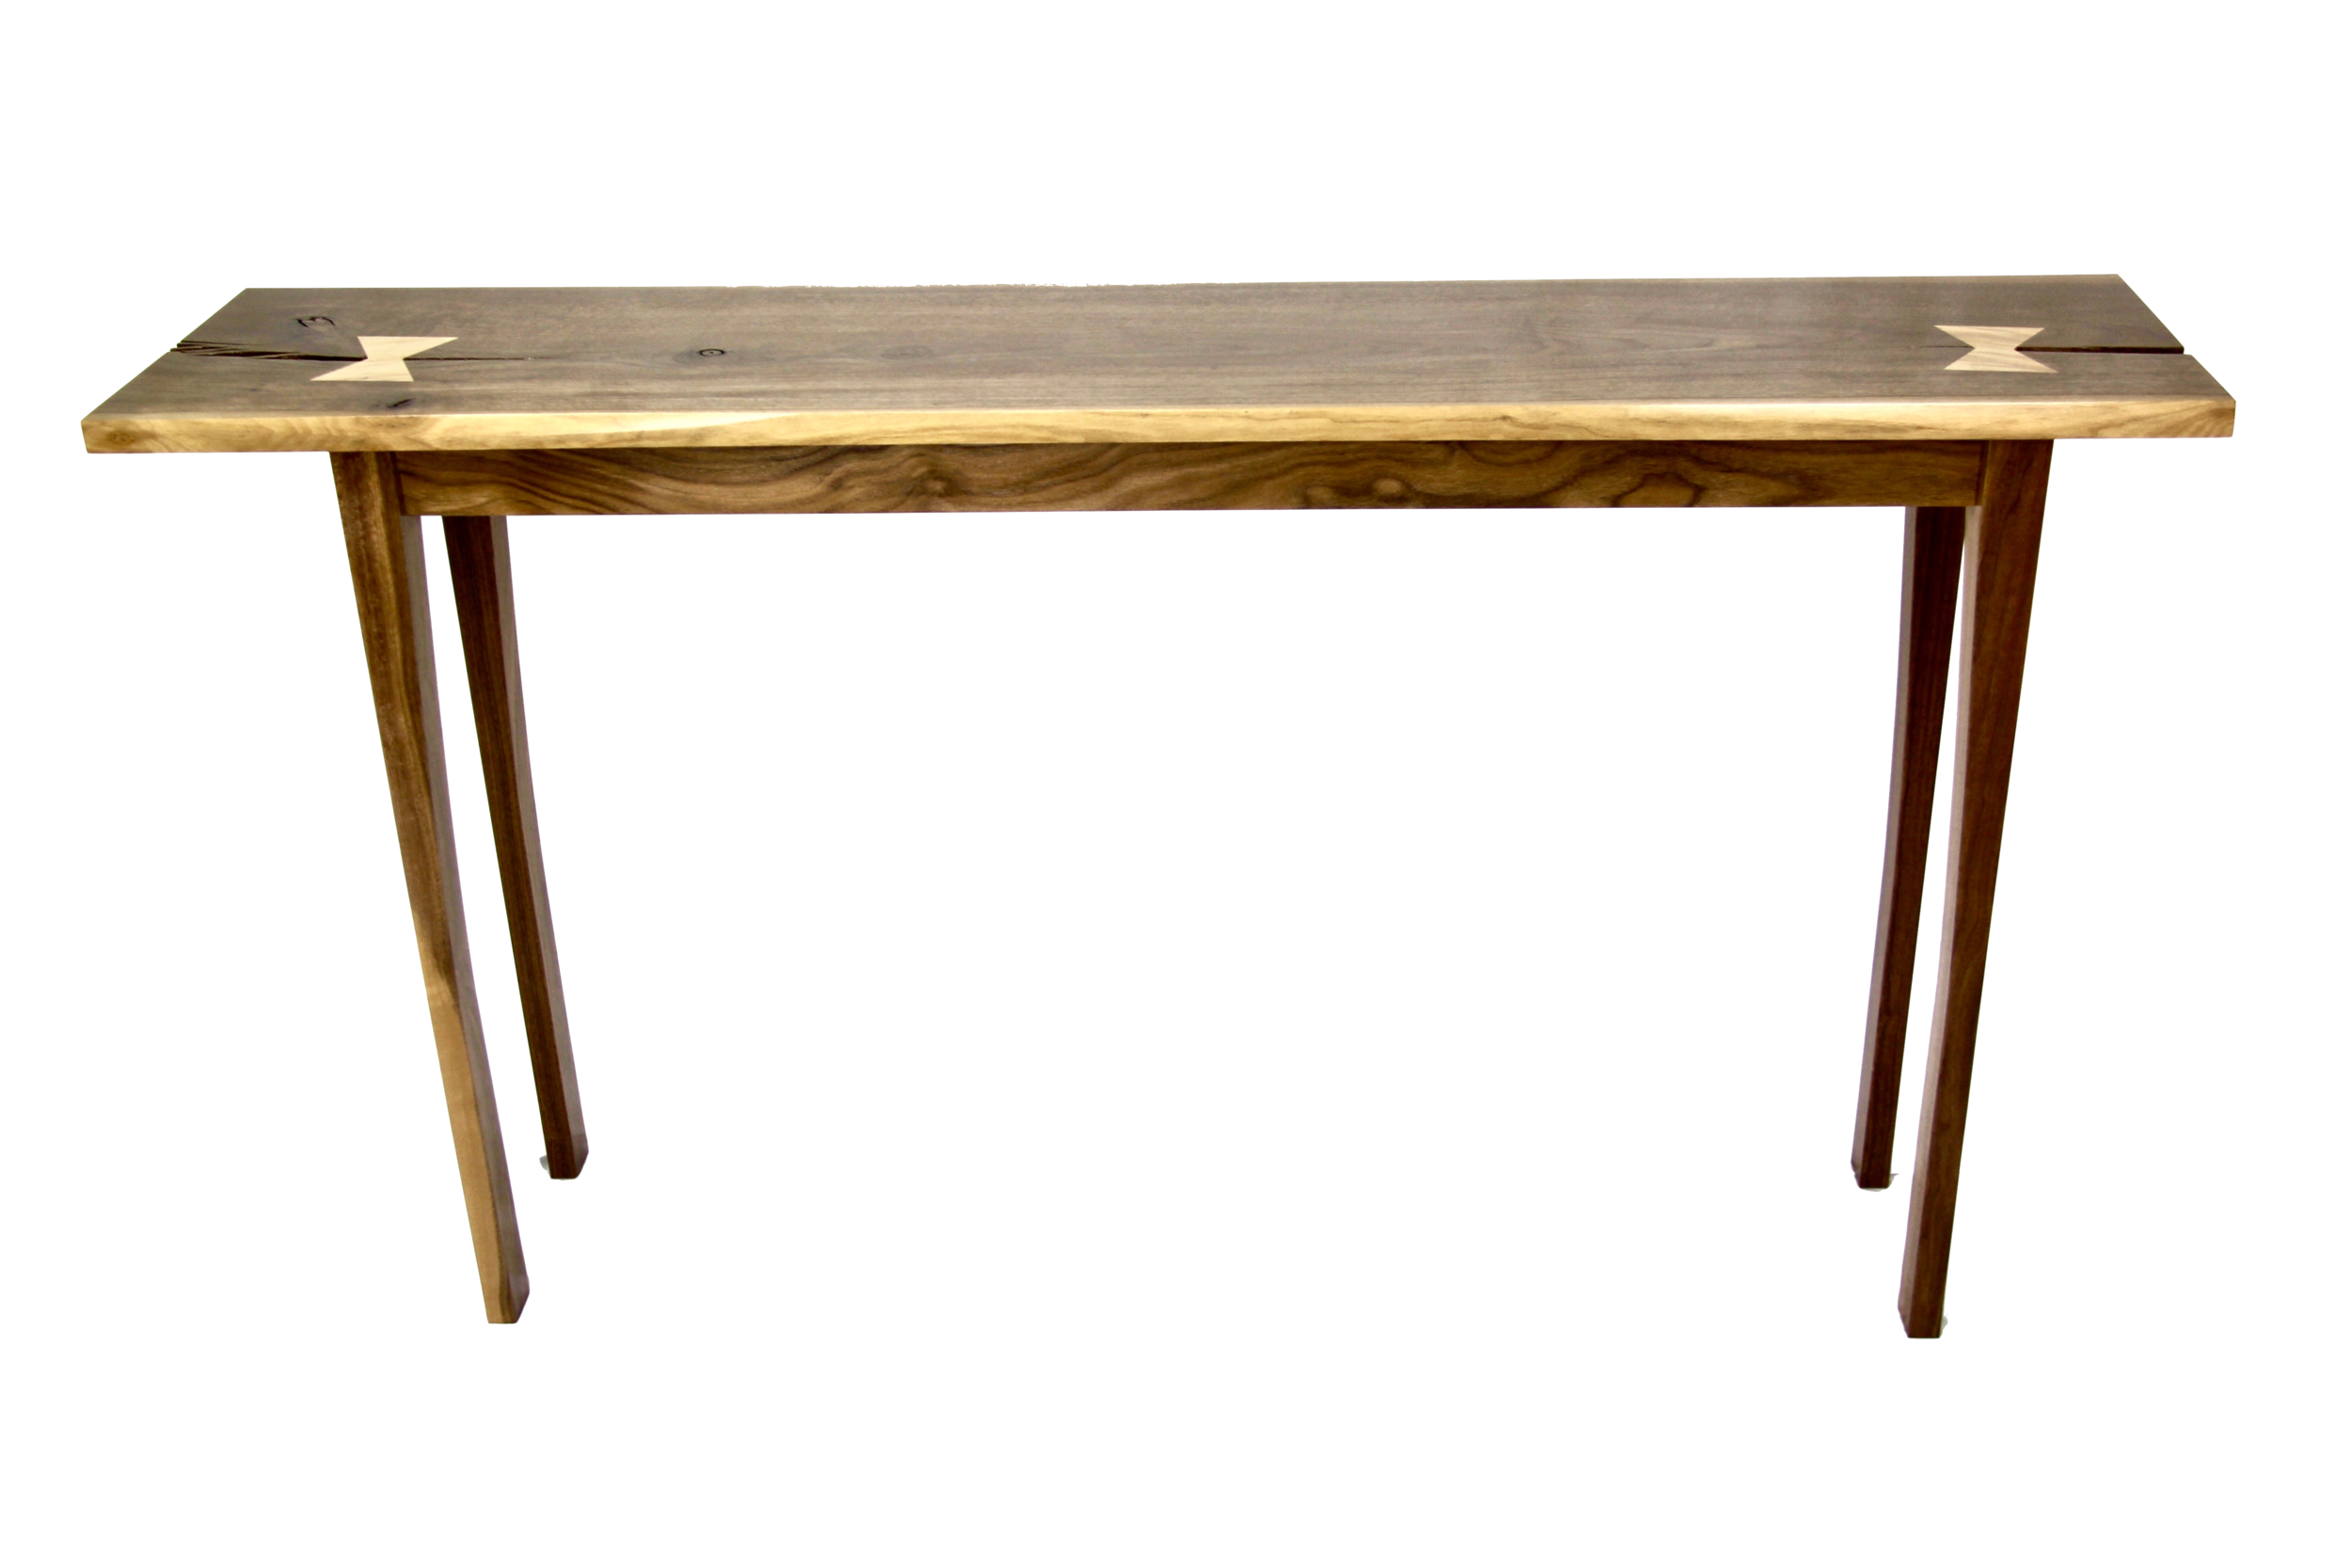 Butterfly table - with Tiger Maple Butterfly Tenons (available for purchase in our online shop or at our workshop)